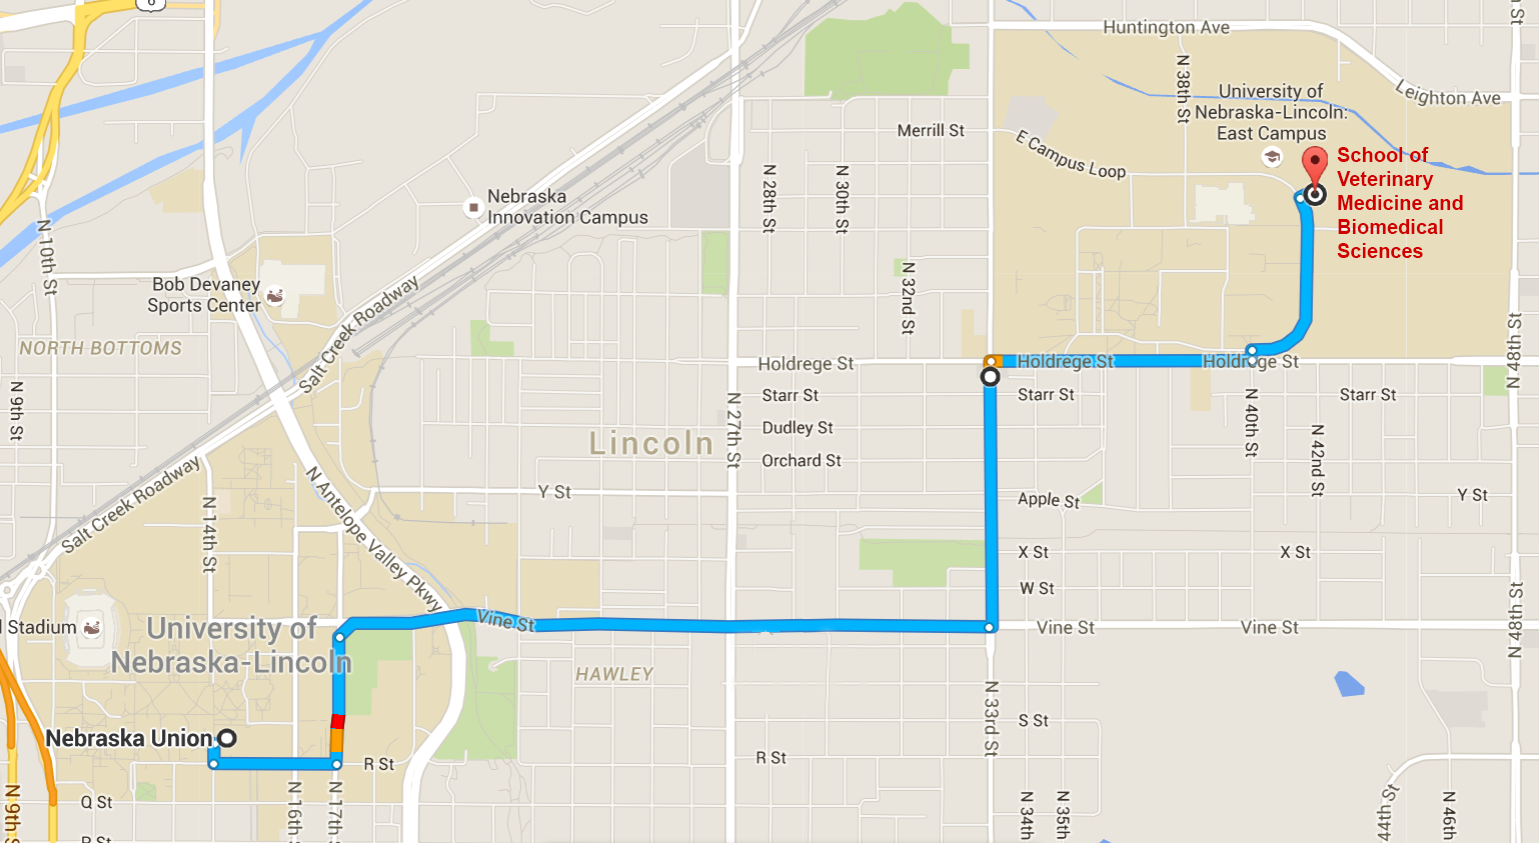 Map showing driving directions from UNL City Campus to School of Veterinary Medicine and Biomedical Sciences